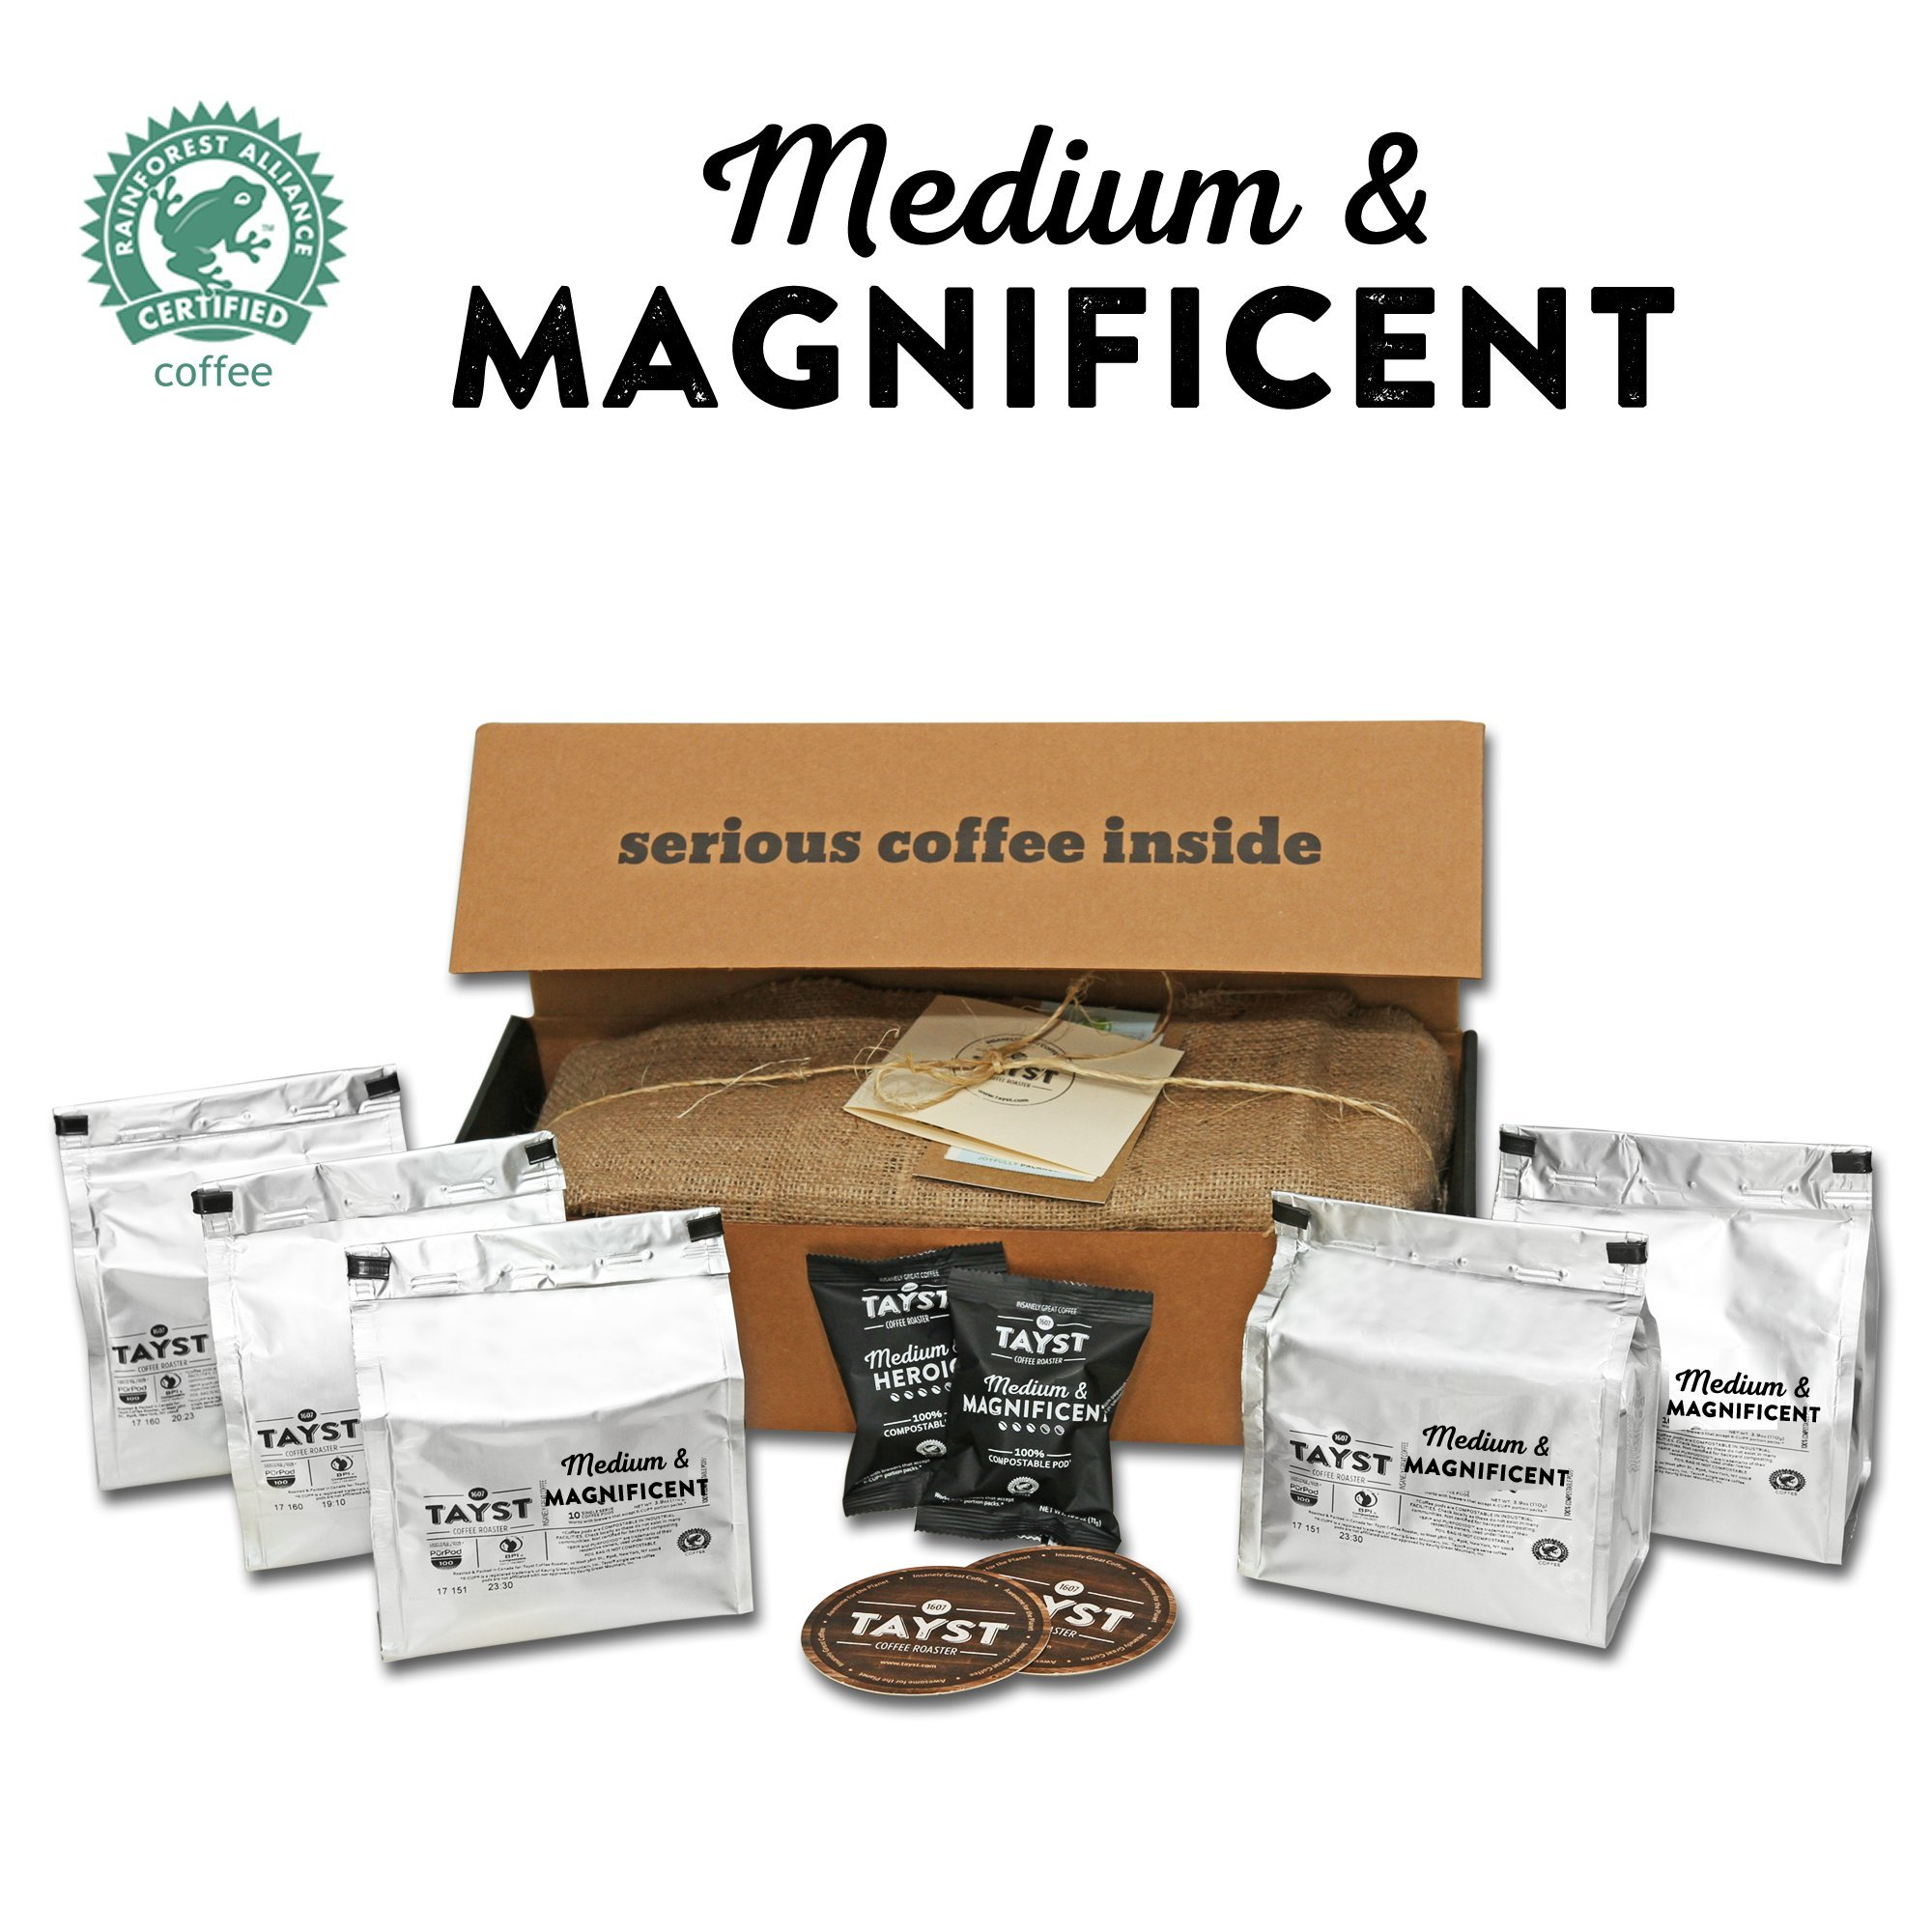 Tayst Medium Roast Coffee Pods | 50 ct. Medium & Magnificent | 100% Compostable Keurig K-Cup compatible | Gourmet Coffee in Earth Friendly packaging by Tayst Coffee Roaster